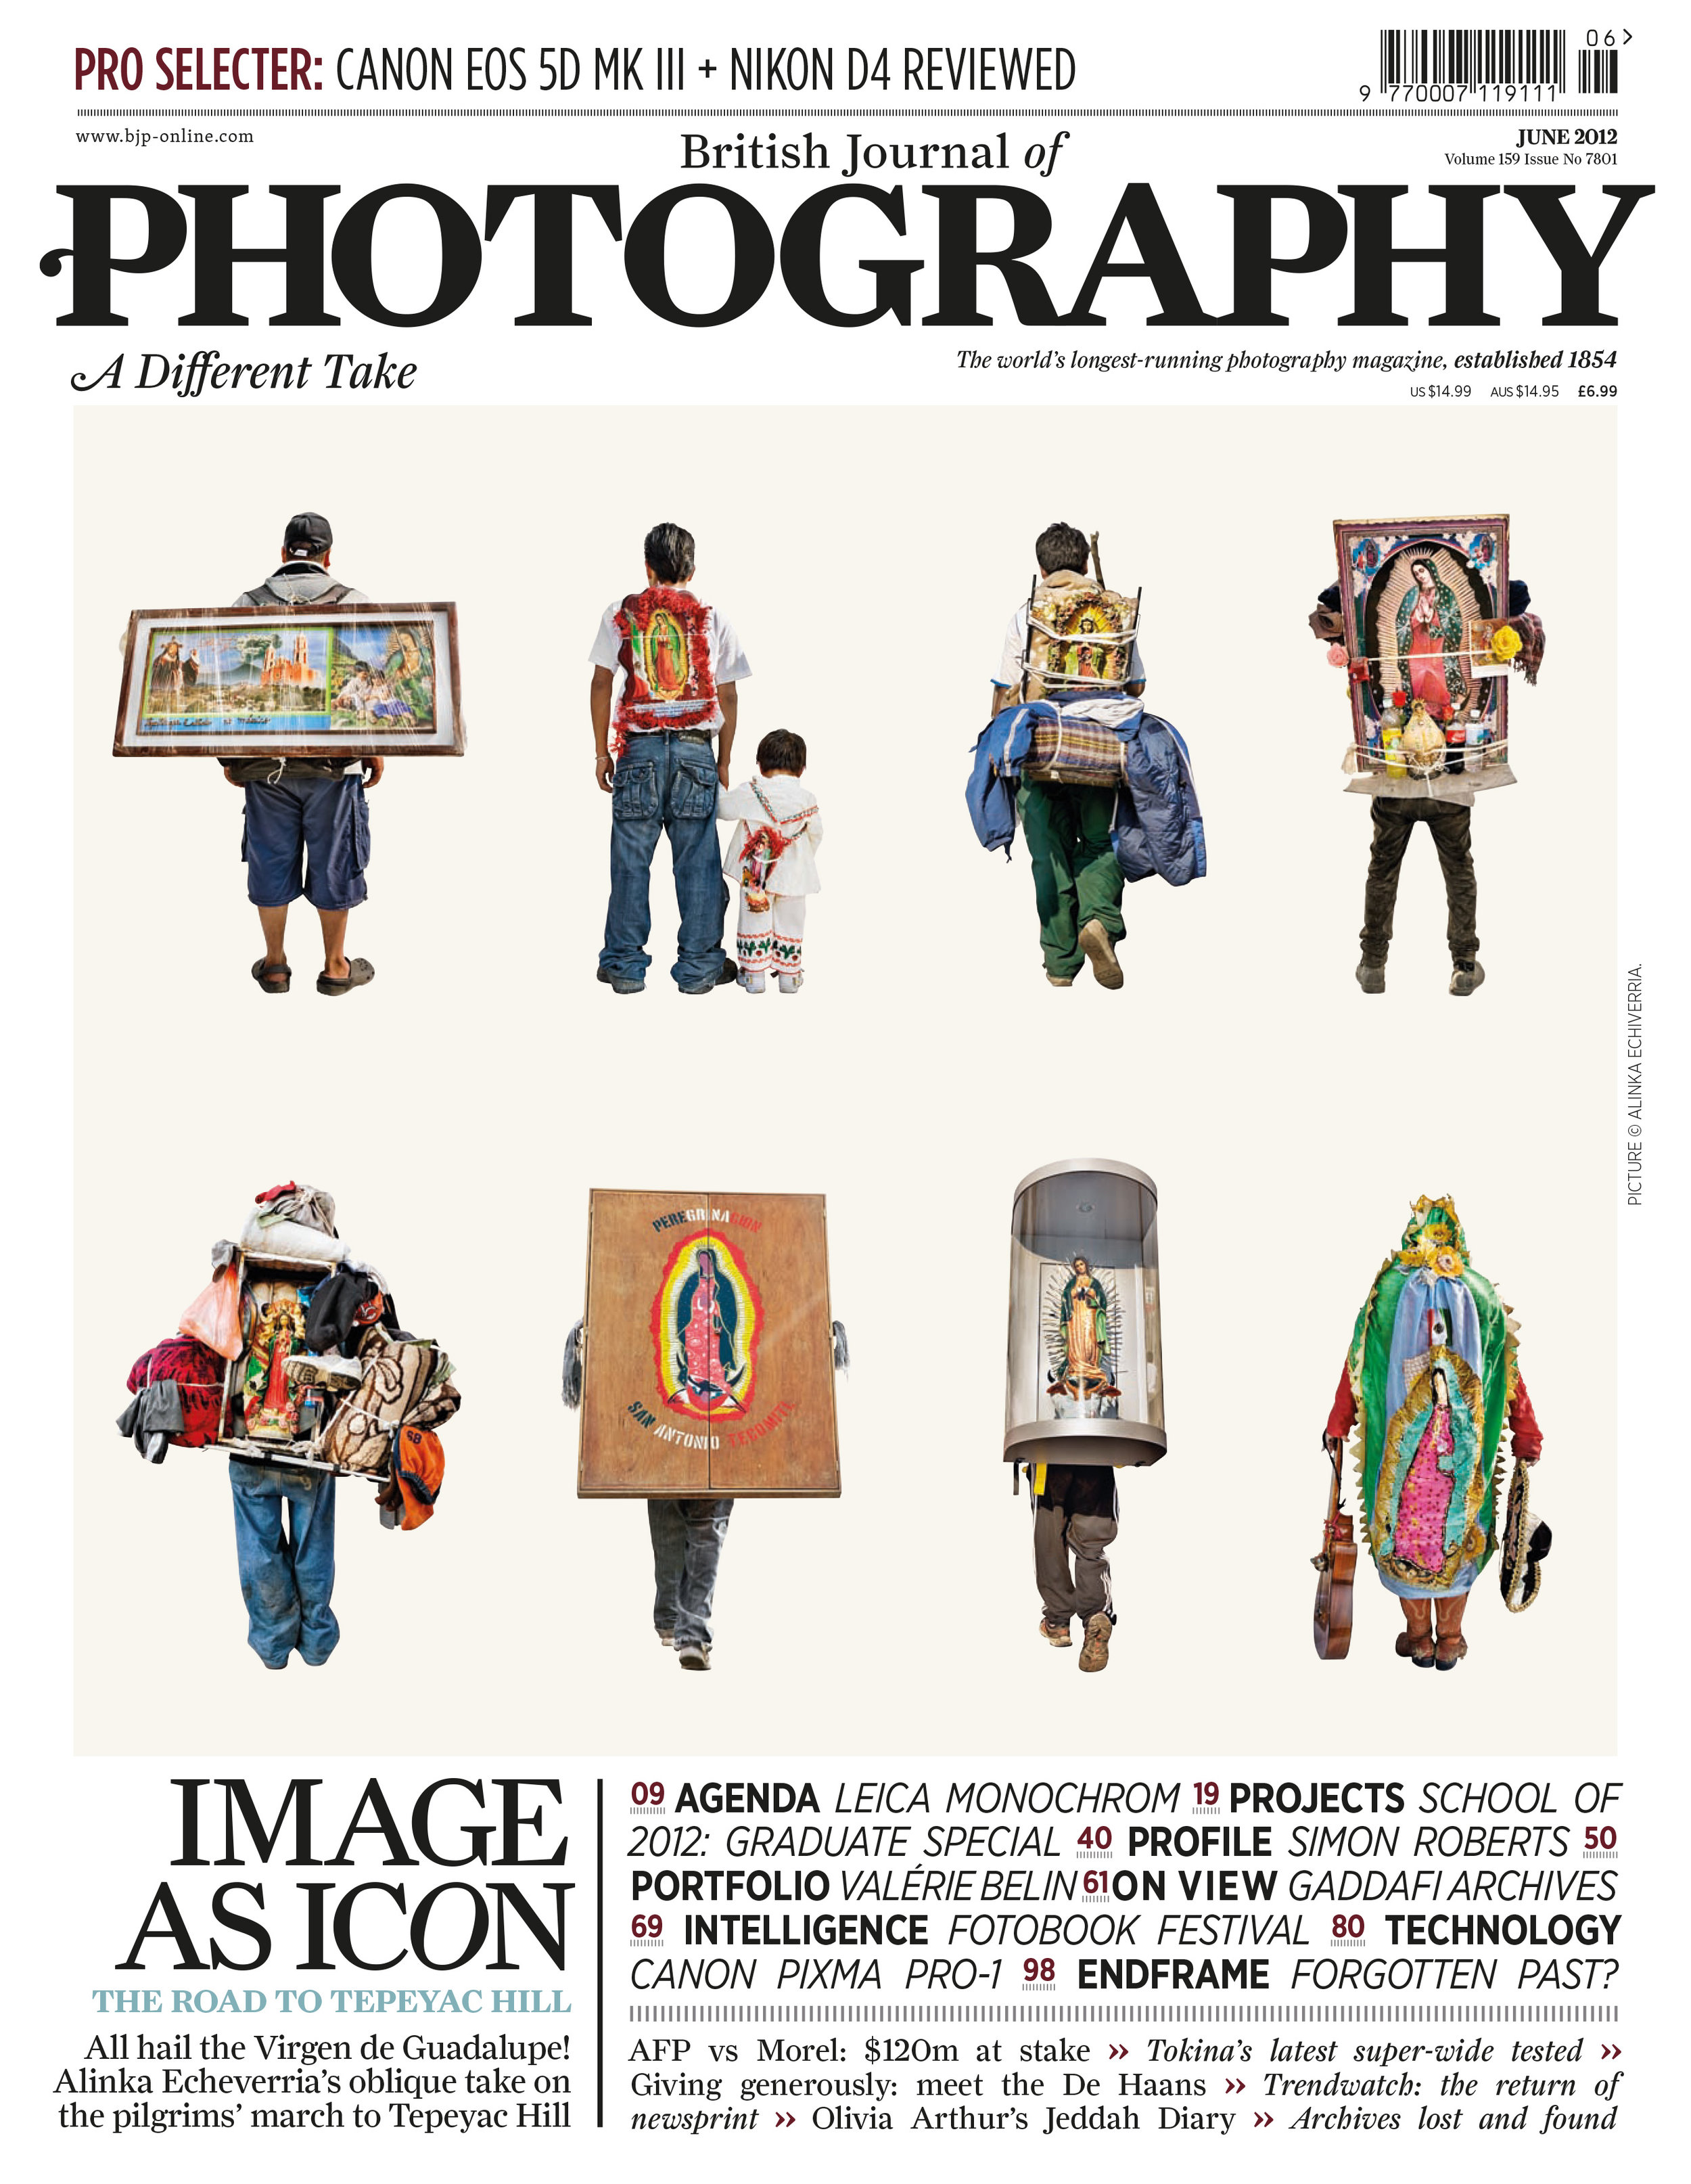 Alinka-Echeverria-cover-british-journal-of-photography.jpg